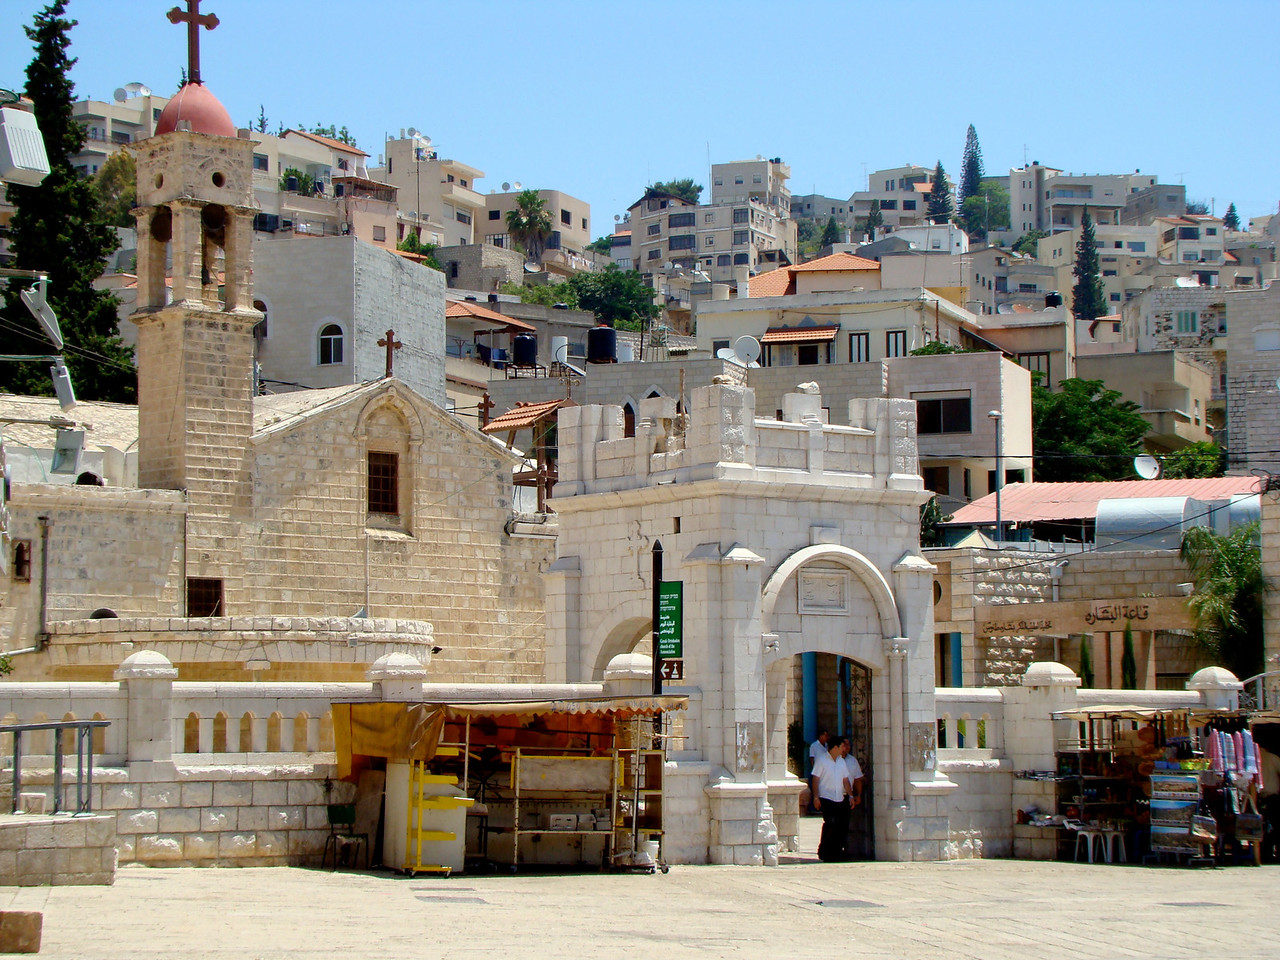 Nazareth-Greek Church of Annunciation